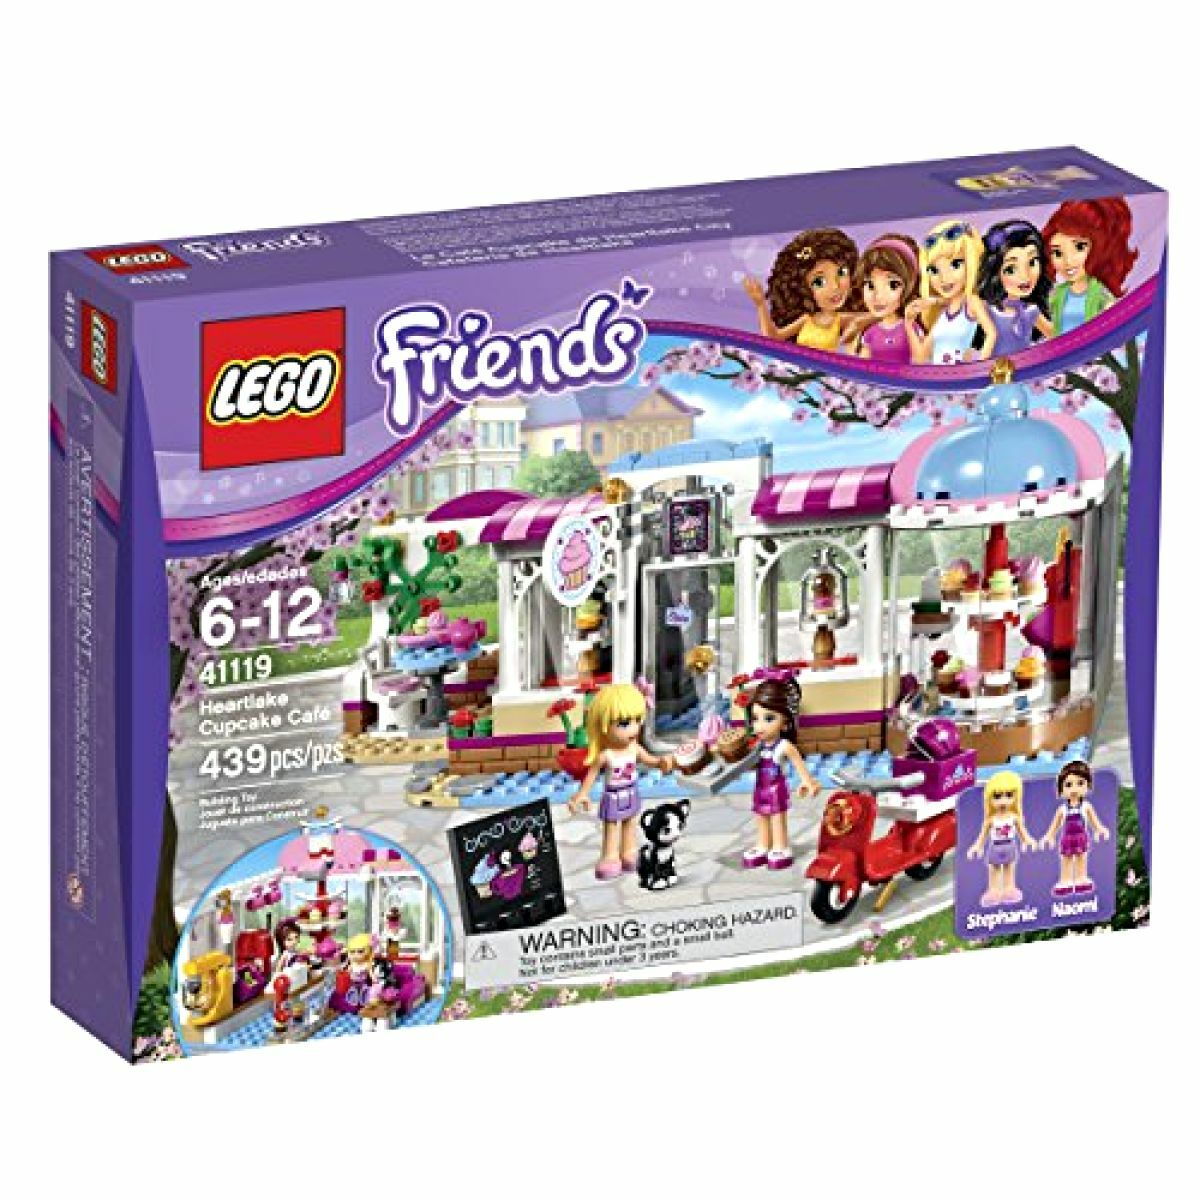 LEGO Friends Heartlake Cupcake Cafe 41119 Building Set New Kids Toy Box NISB Kit